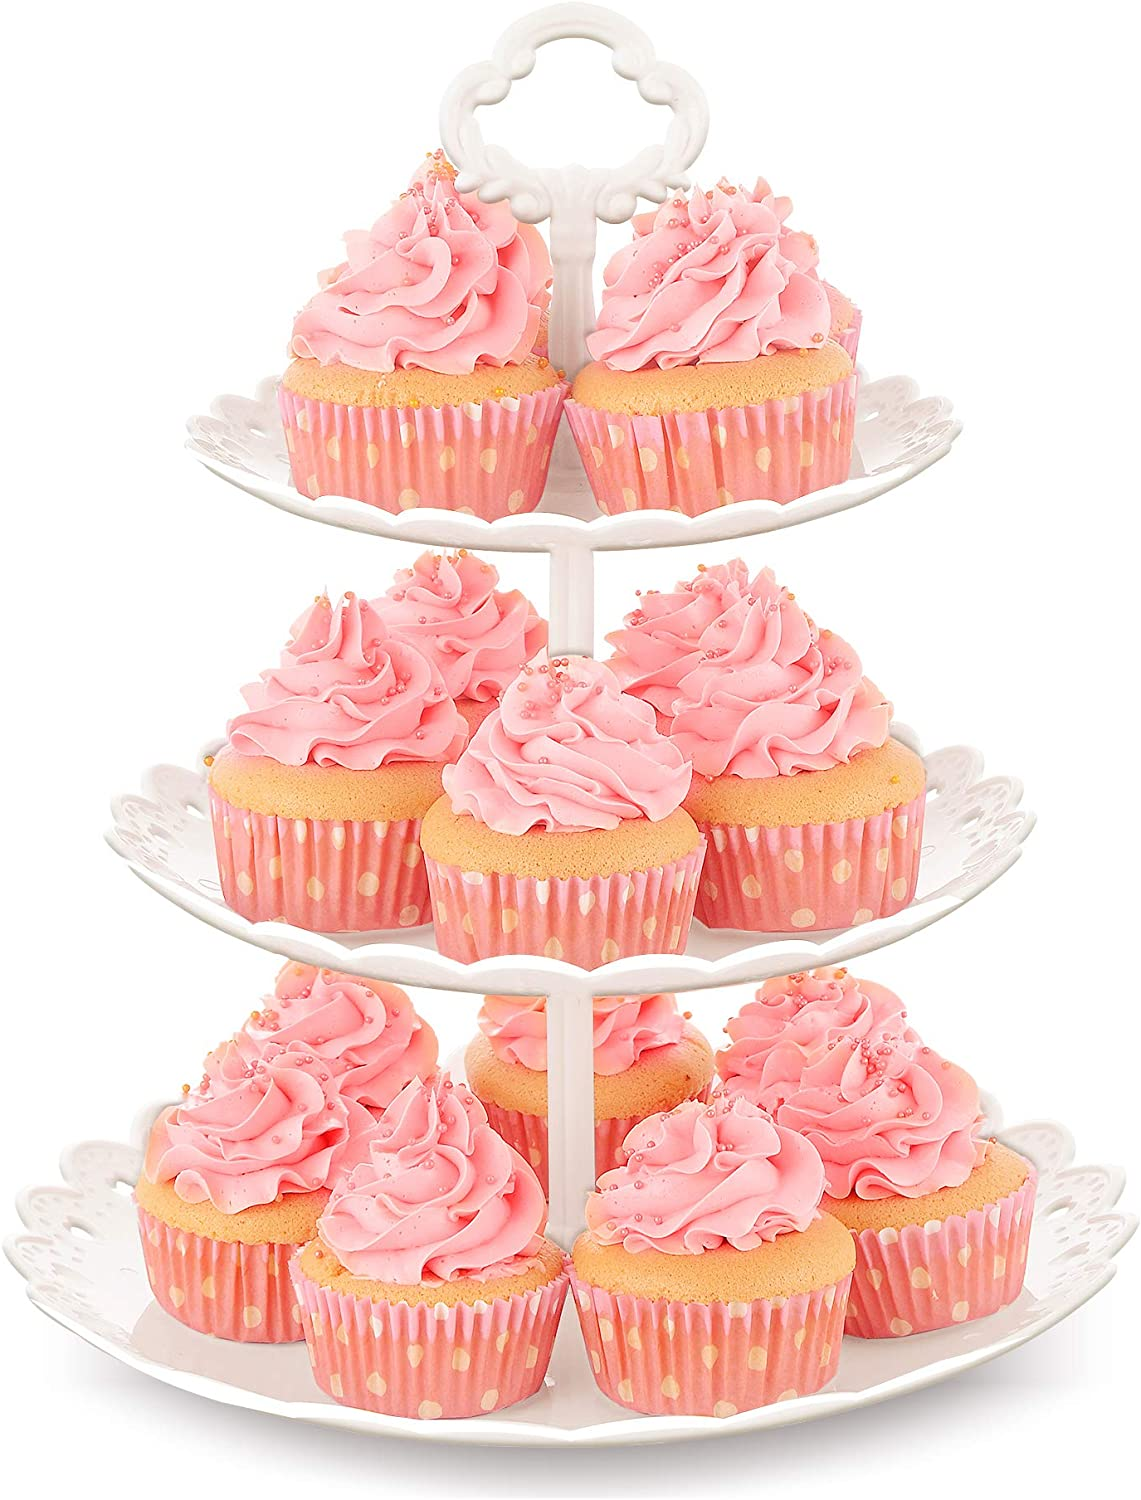 NWK Large 3-Tier Cupcake Stand 10.9Inch Plastic Serving Tray for Wedding Birthday Summer Baby Shower Graduation Party (White)